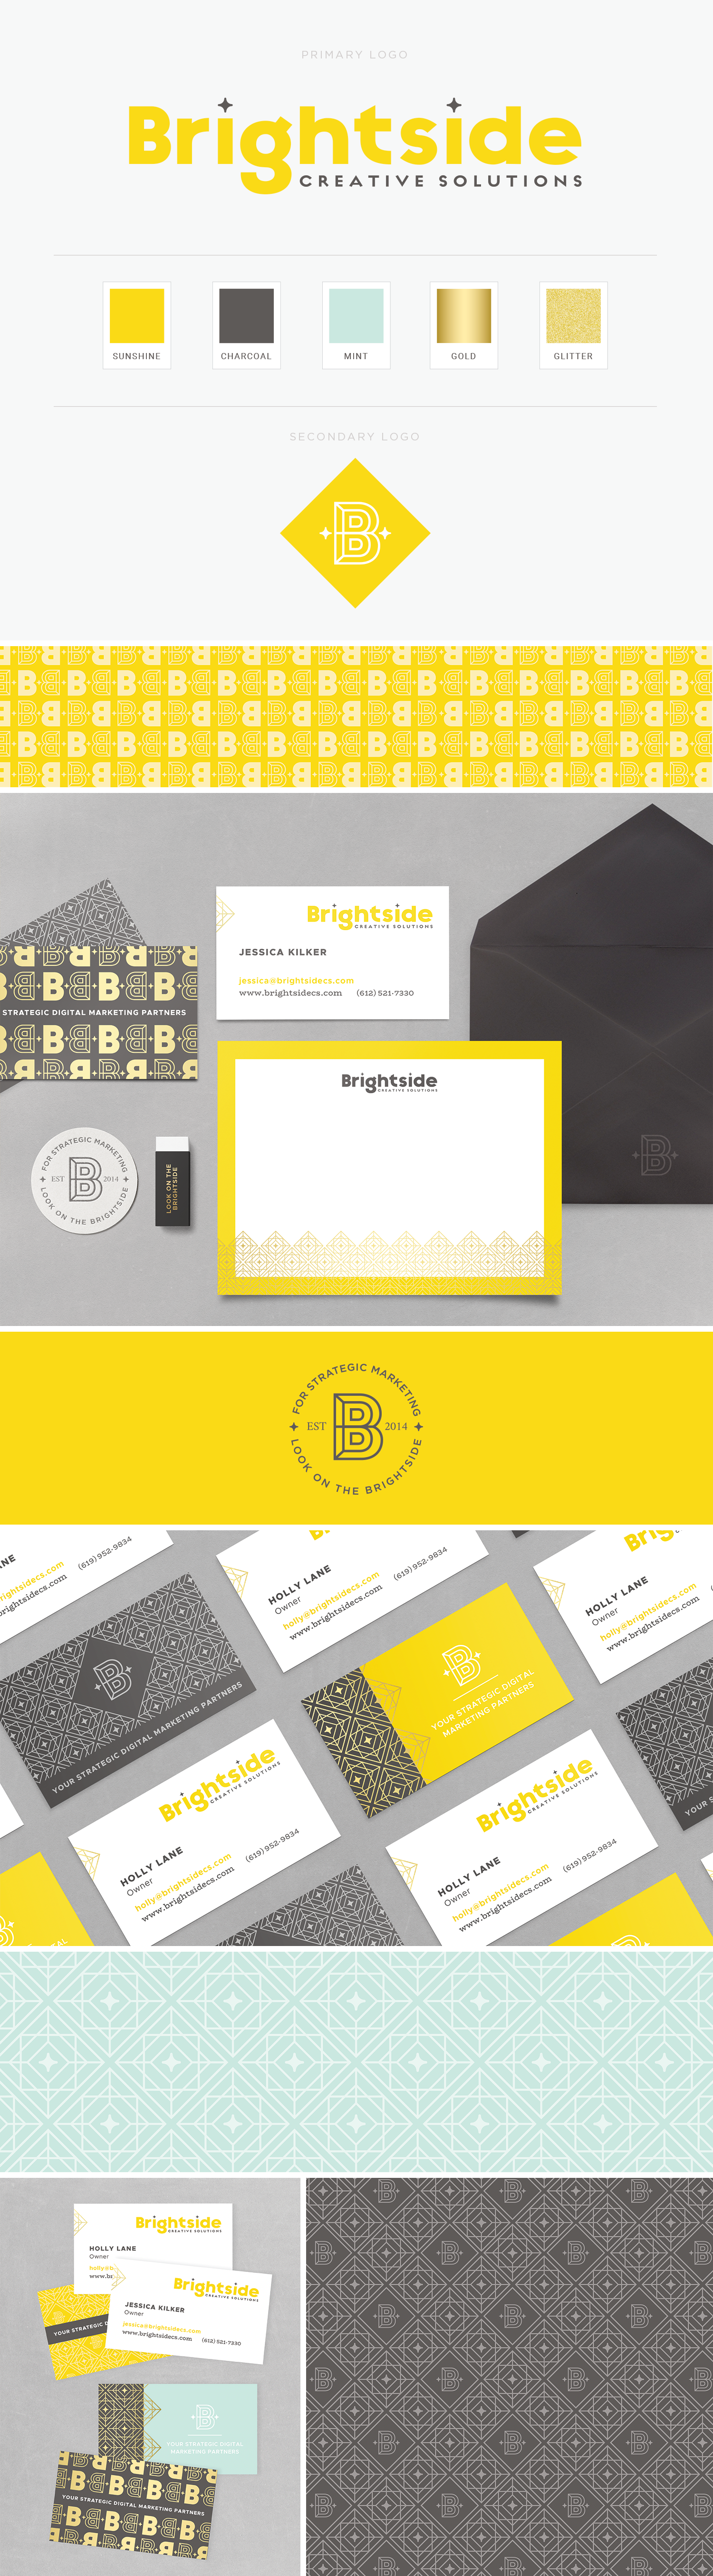 Brightside Creative Solutions branding by Pace Creative Design Studio